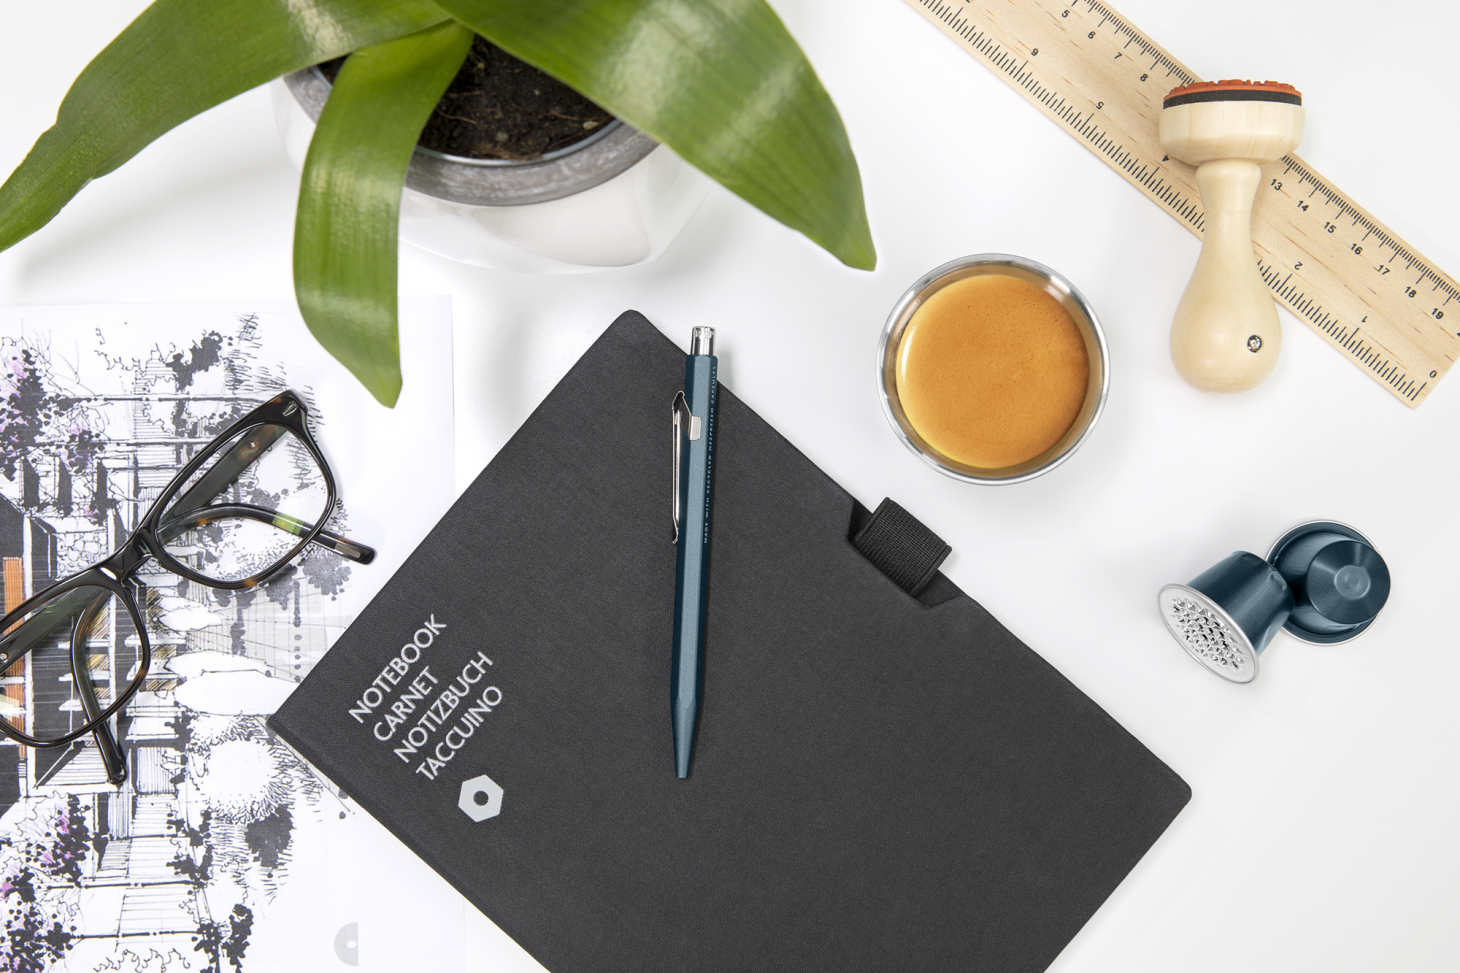 Nespresso and Caran D'Ache collaborate on limite edition sustainable pen